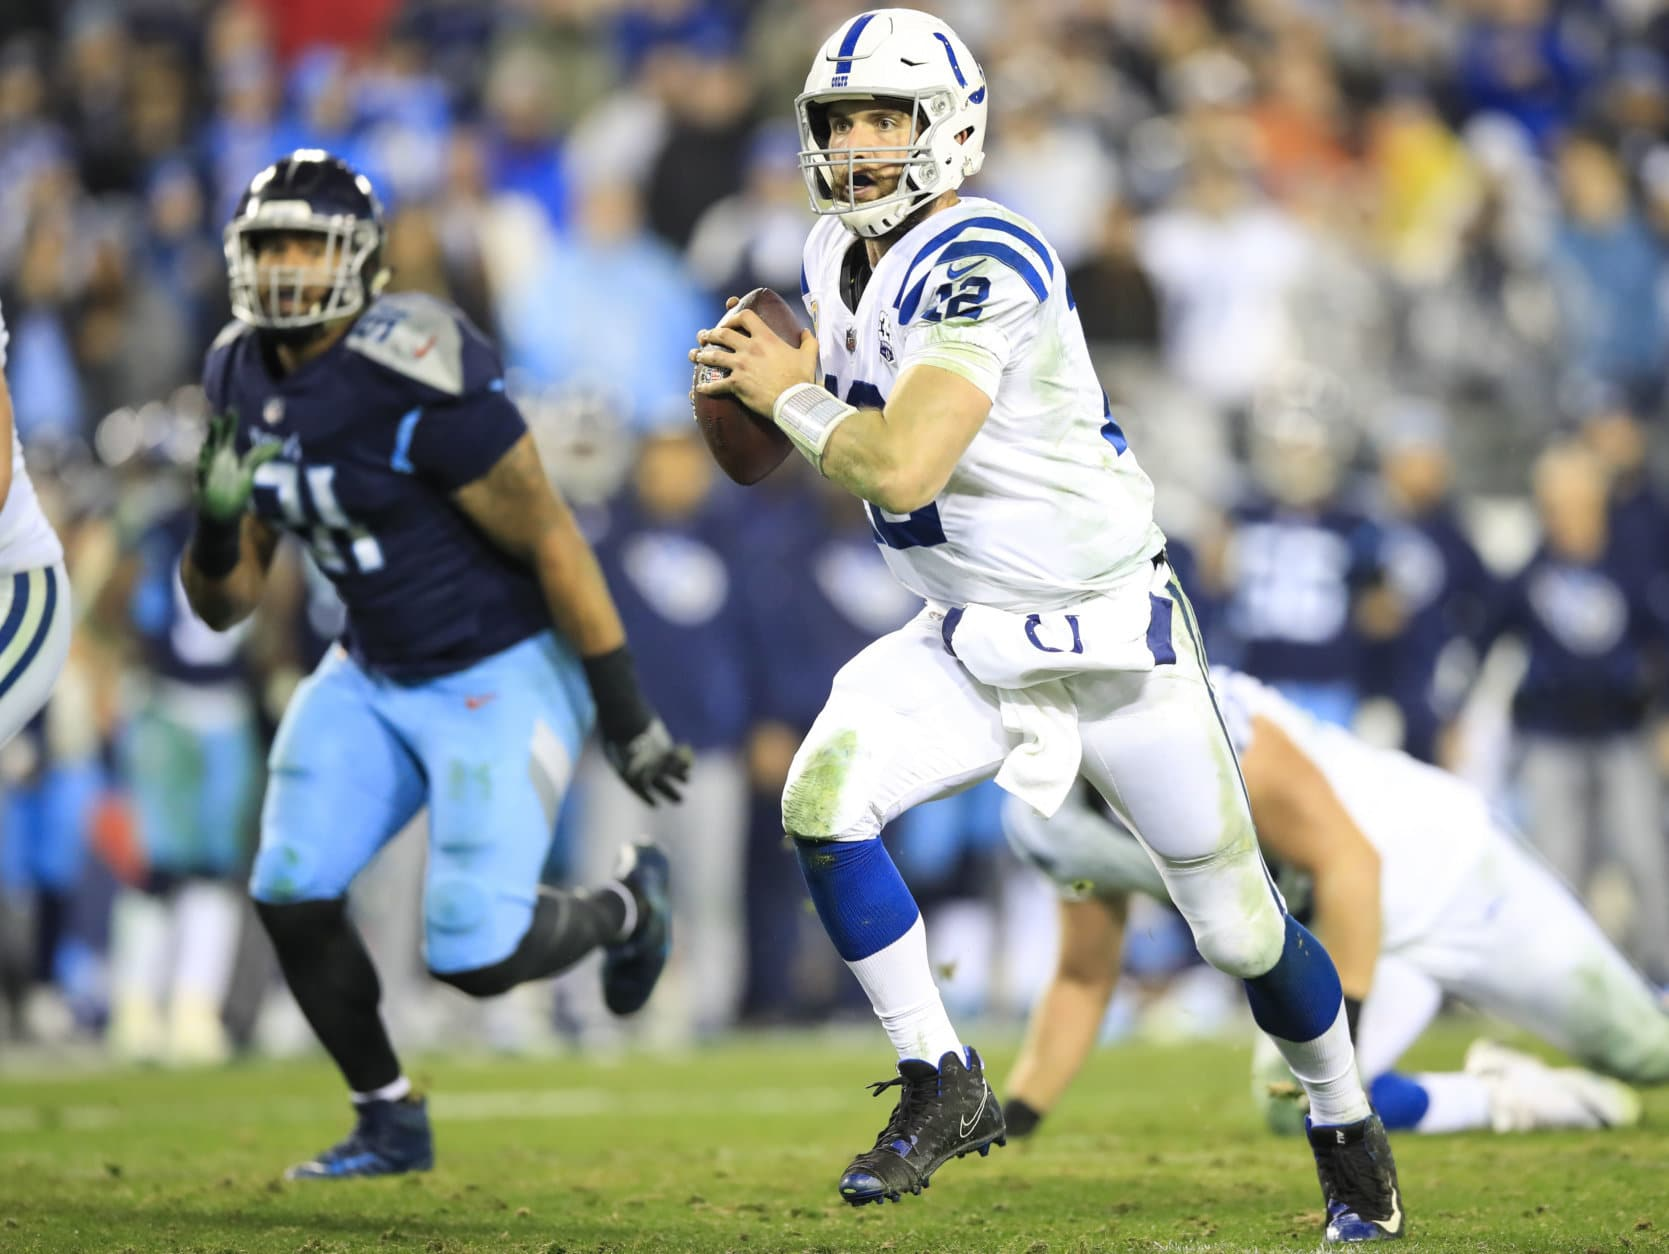 NASHVILLE, TN - DECEMBER 30: Andrew Luck #12 of the Indianapolis Colts runs with the ball against the Tennessee Titans during the fourth quarter at Nissan Stadium on December 30, 2018 in Nashville, Tennessee. (Photo by Andy Lyons/Getty Images)